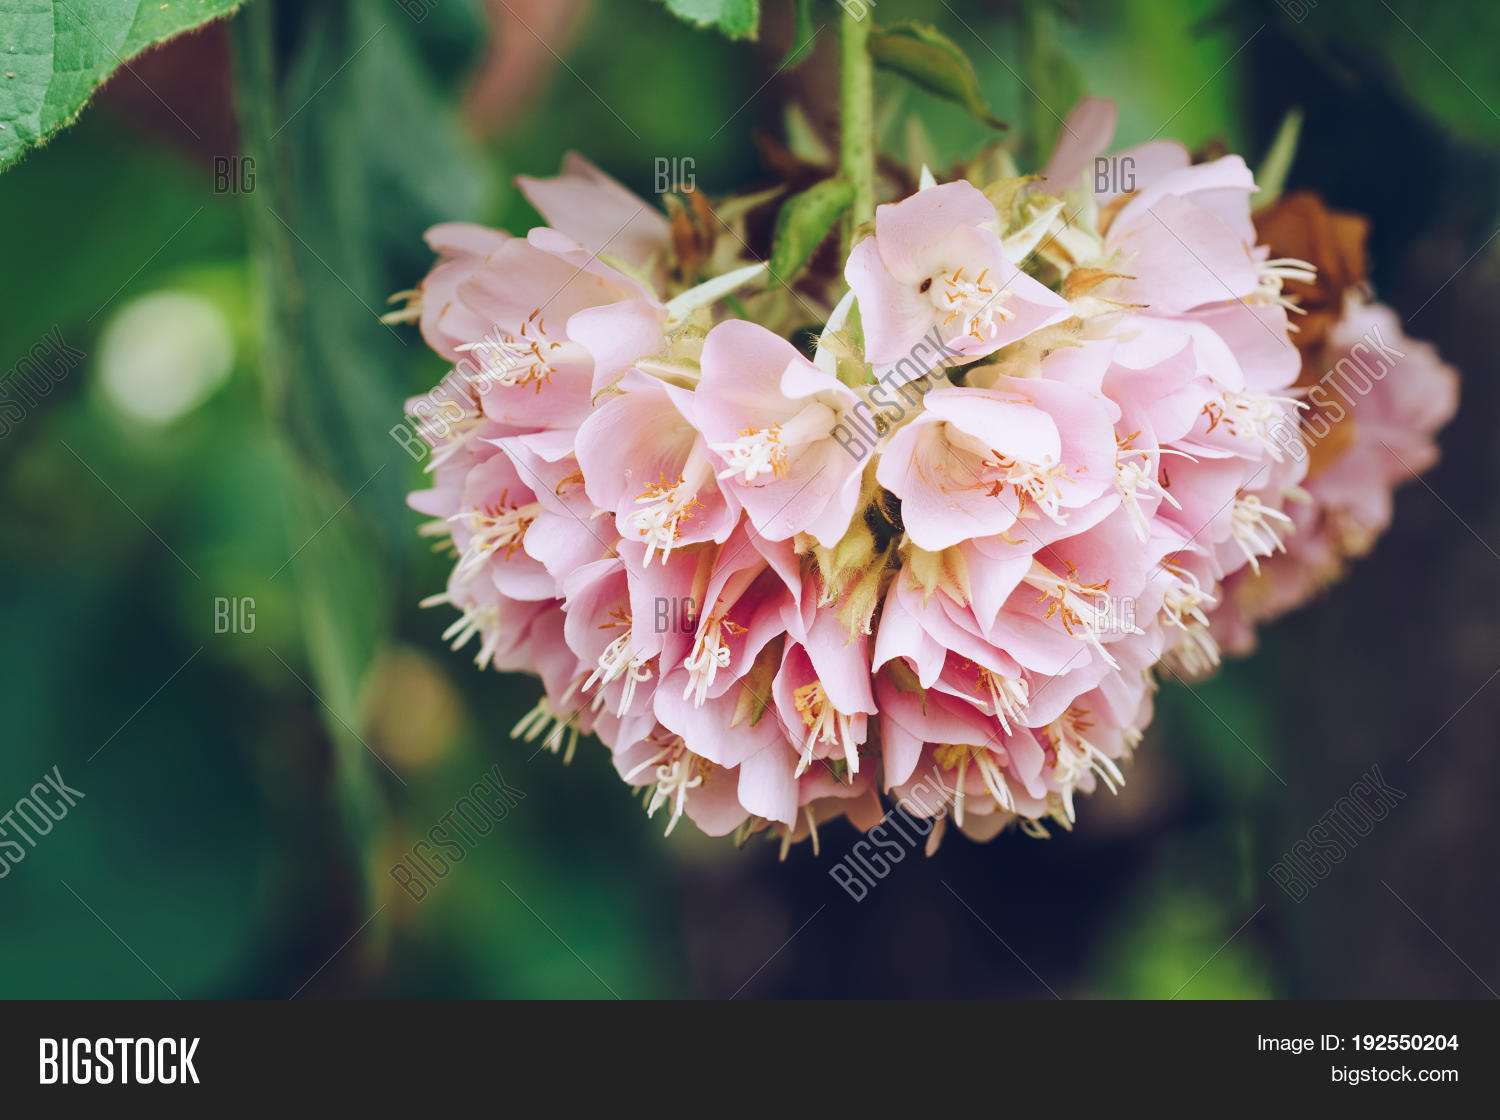 Dombeya wallichii pink image photo free trial bigstock dombeya wallichii or pink ball or pink ball tree this hanging flower clusters are pink mightylinksfo